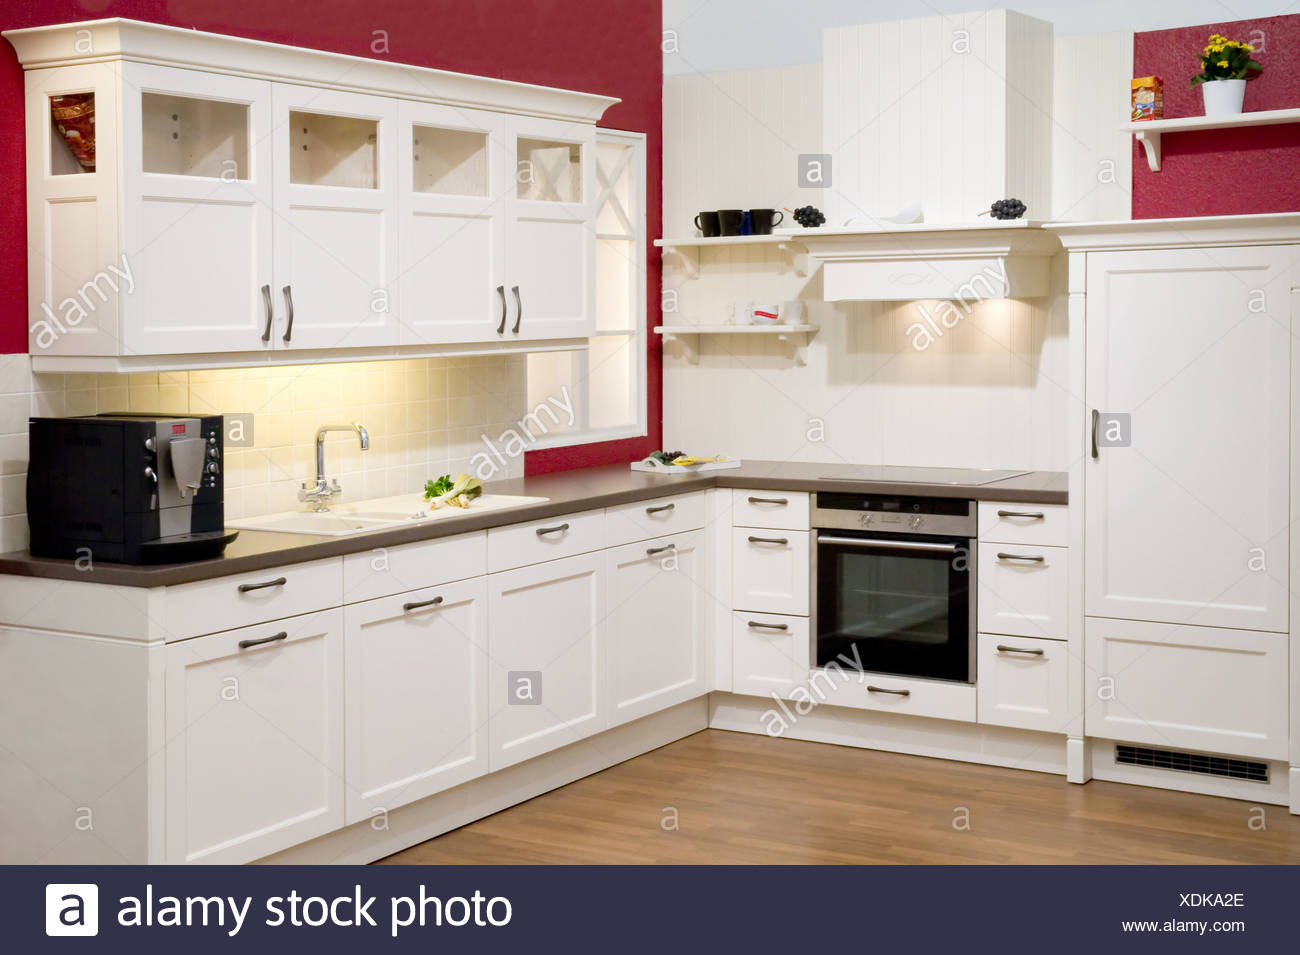 Fitted Kitchen Modern Stock Photos & Fitted Kitchen Modern Stock ...